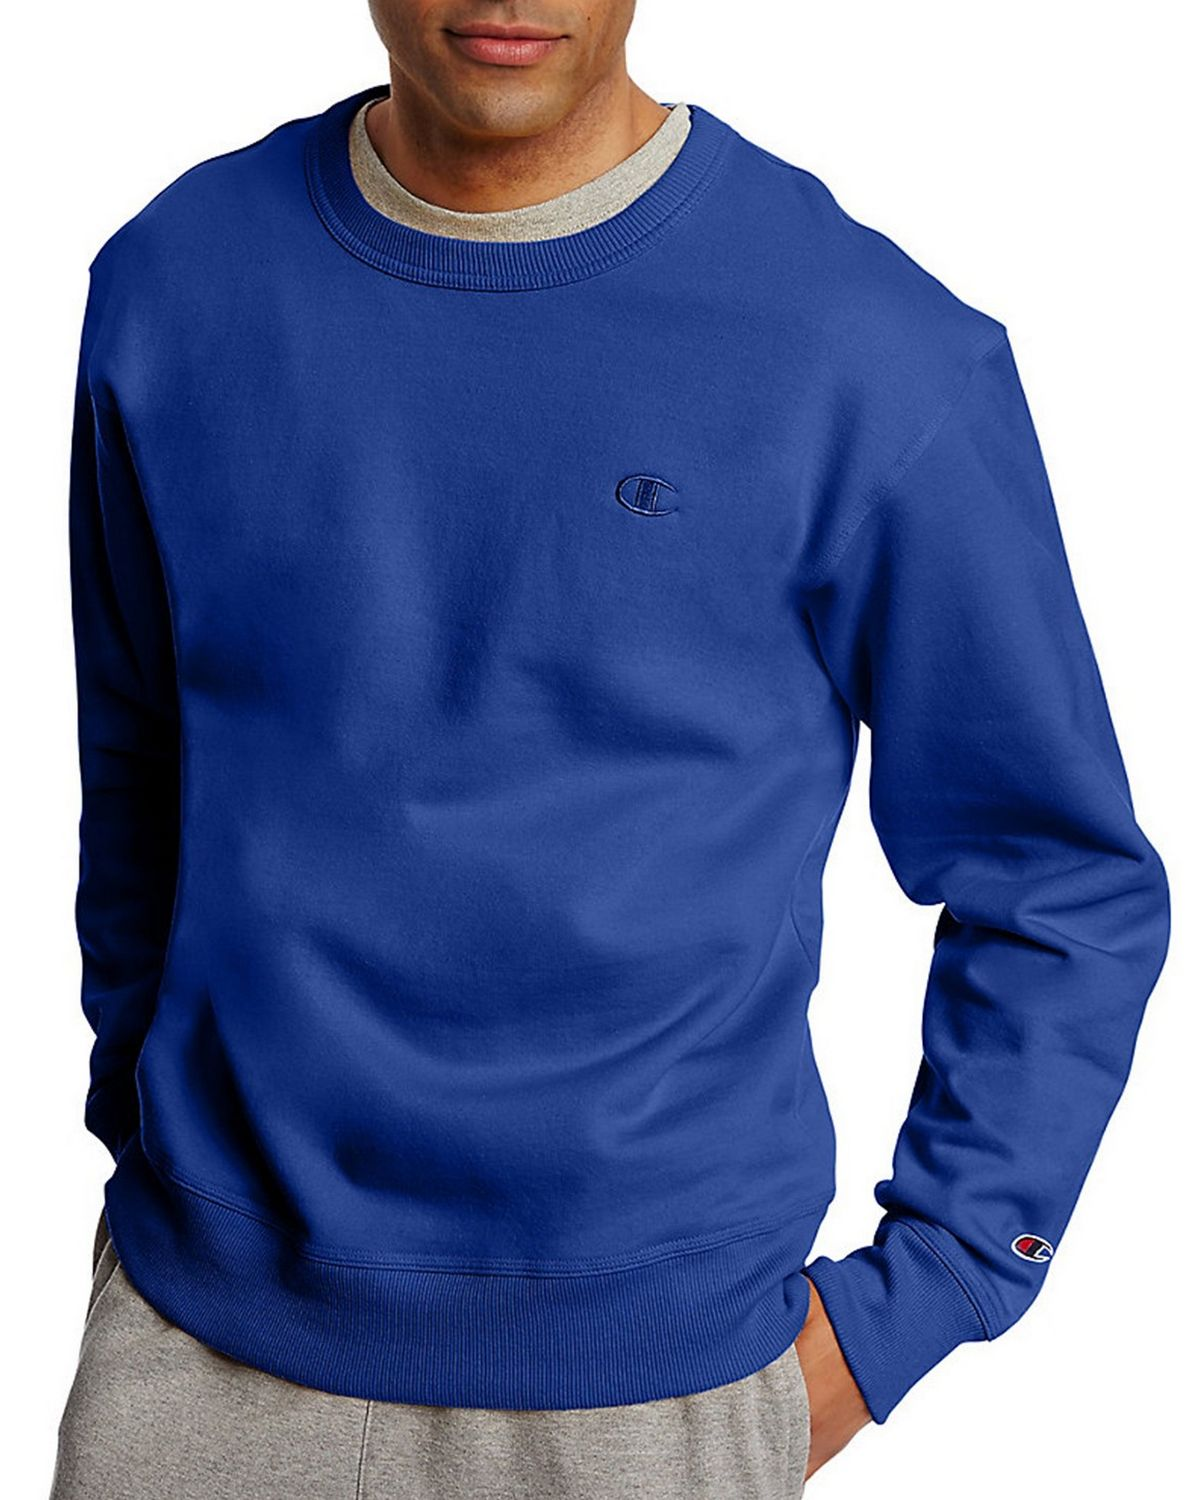 Champion S0888 Mens Fleece Pullover Crew - Surf The Web - S S0888